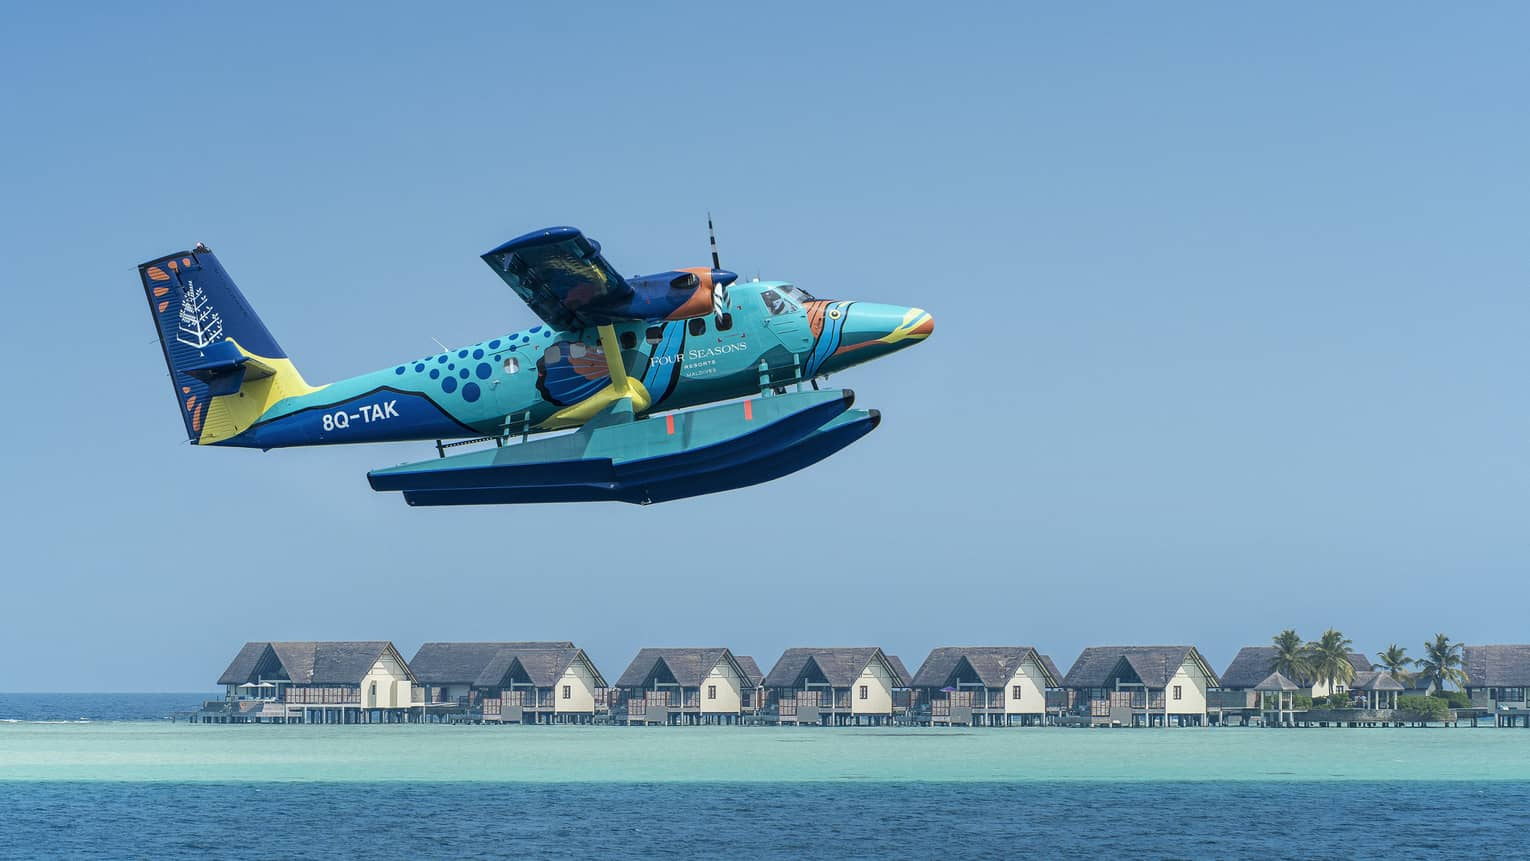 Maldives Sea Plane taking off with water villas and palm trees in the background